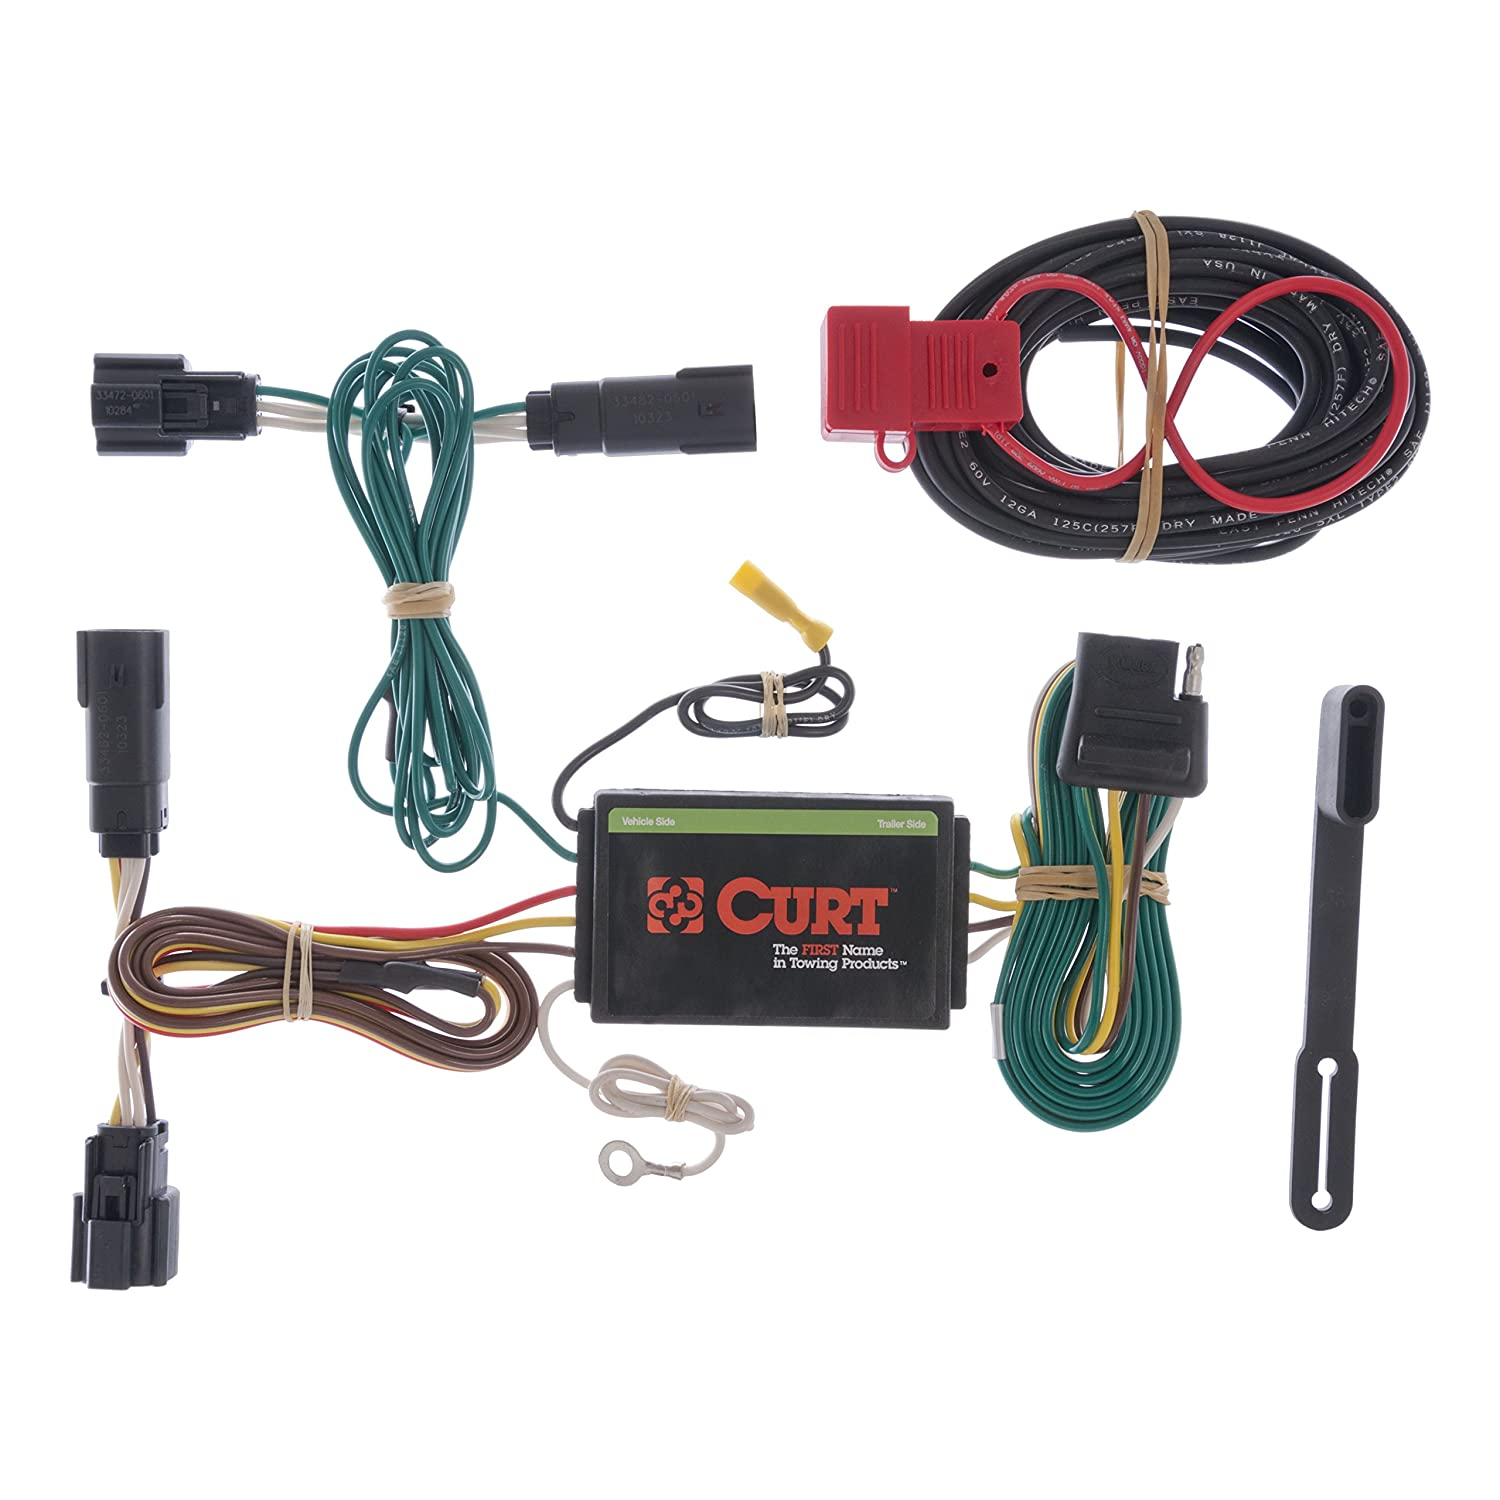 CURT Class 3 Trailer Hitch Bundle with Wiring for 2011-2014 Ford Edge 13067 /& 56120